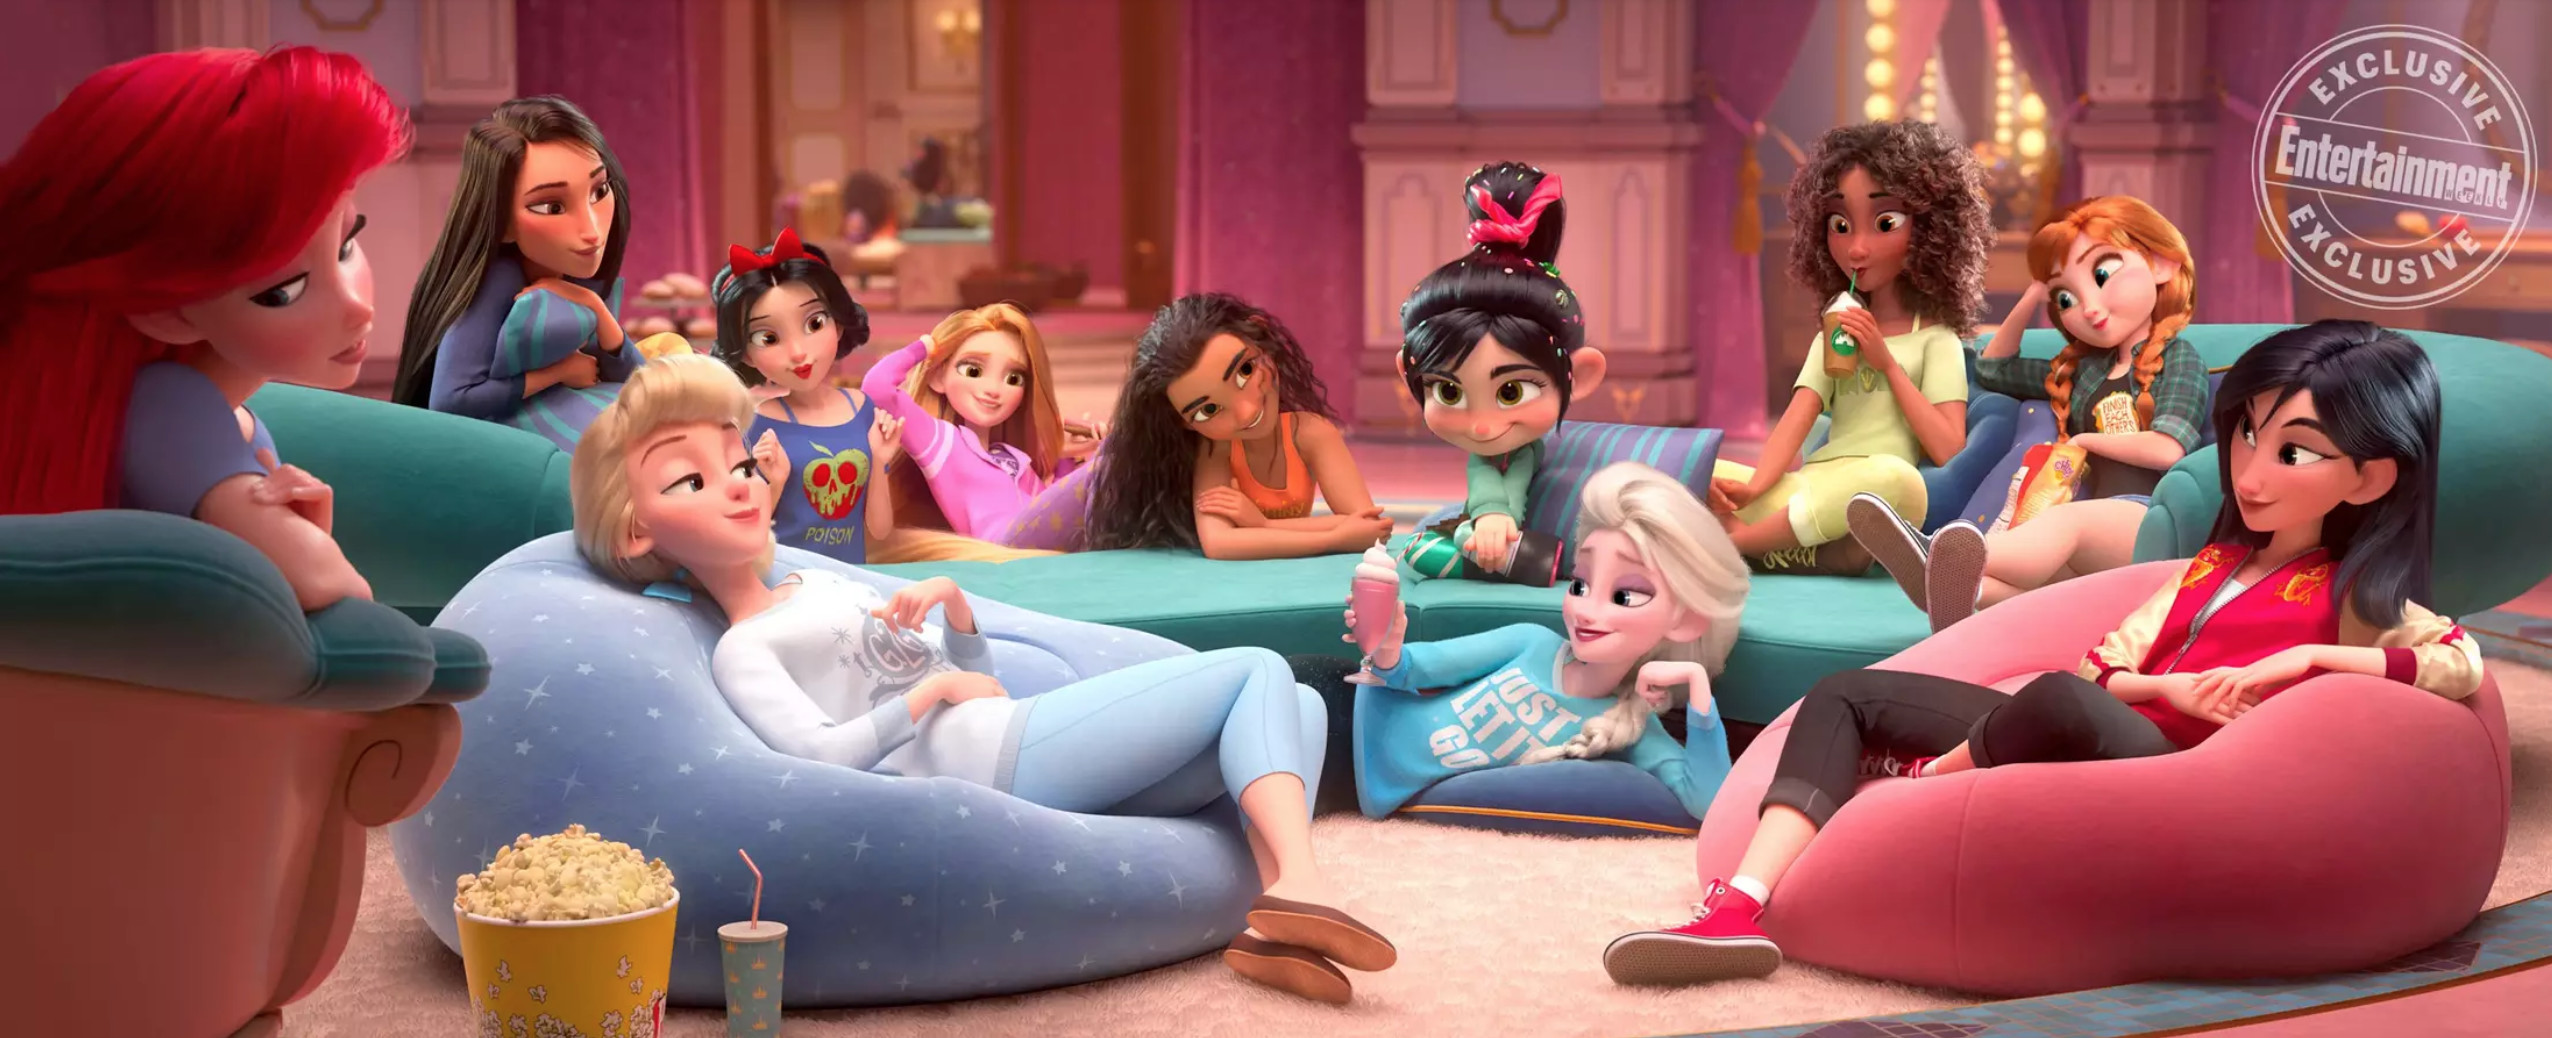 A Deep Analysis Of All The Disney Princess Outfits In 'Ralph Breaks The Internet'